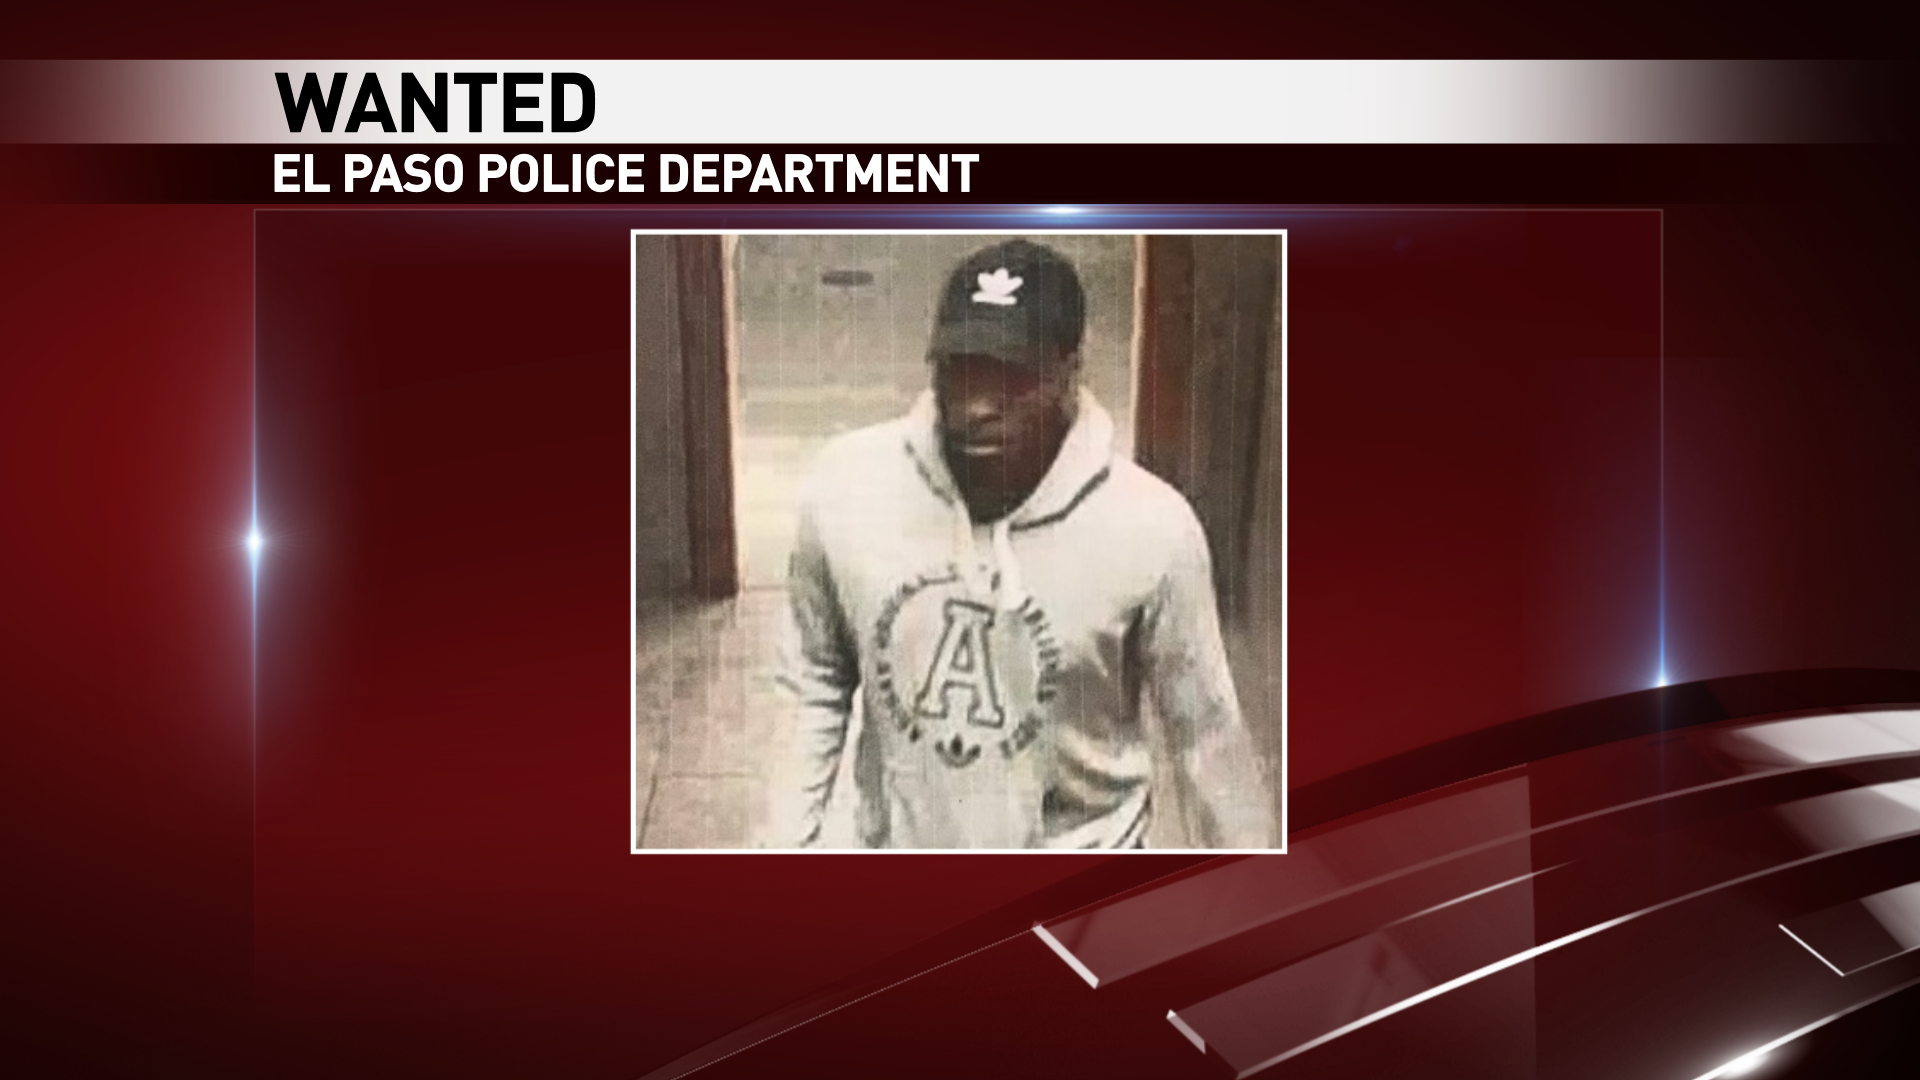 El Paso police believe this man was taking footage of women inside the Ross restrooms.